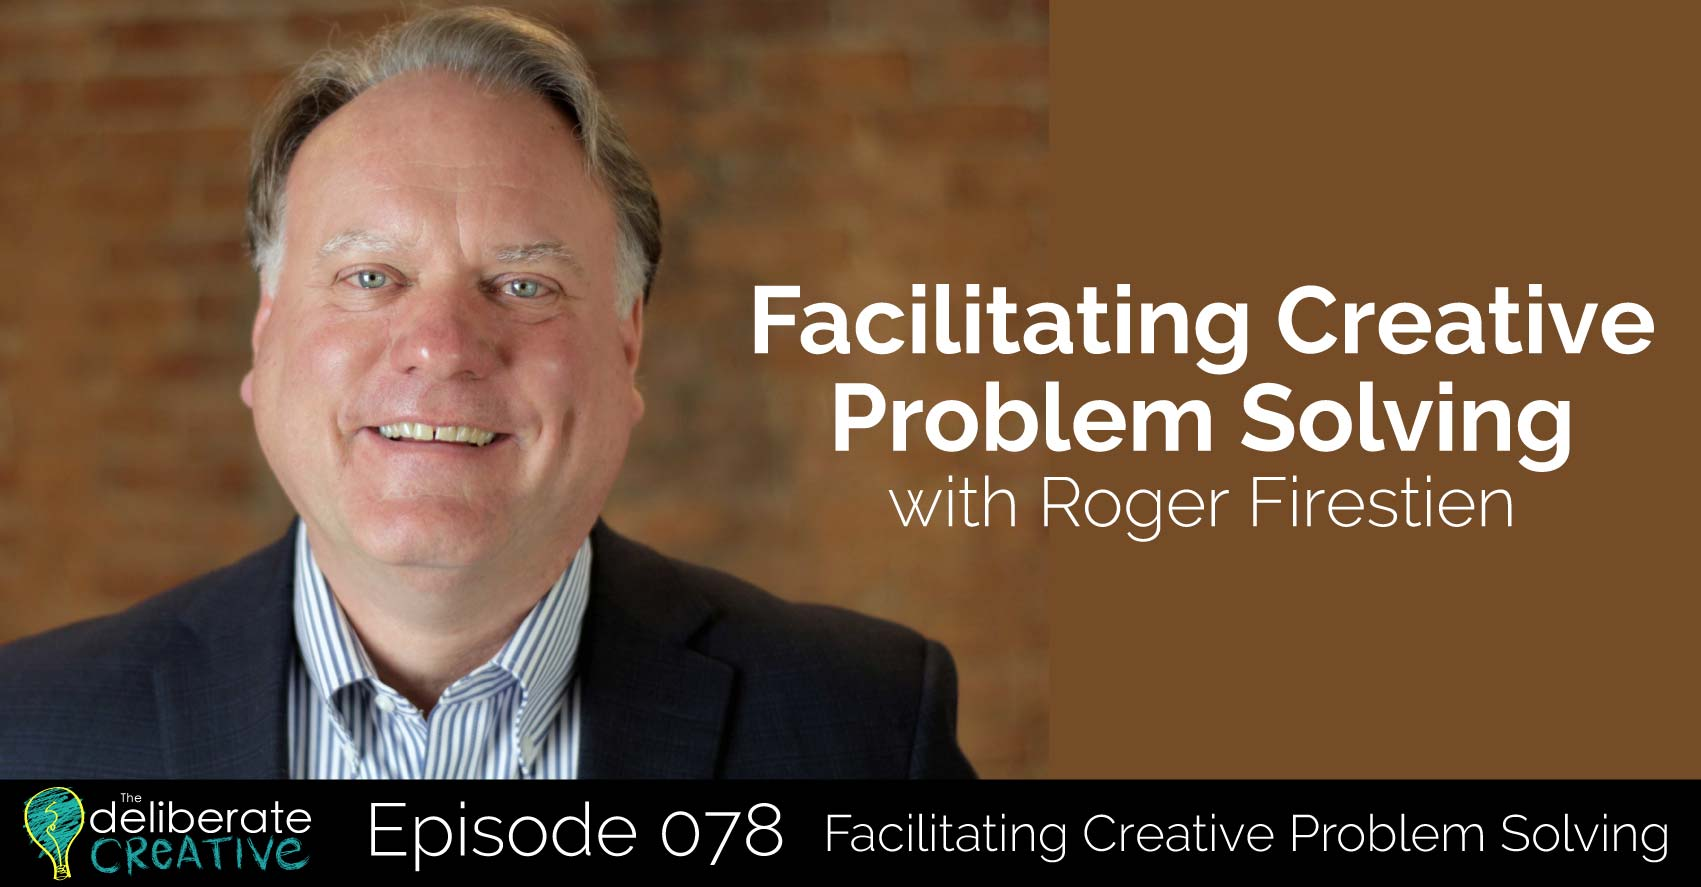 Podcast: Facilitating Creative Problem Solving with Roger Firestien